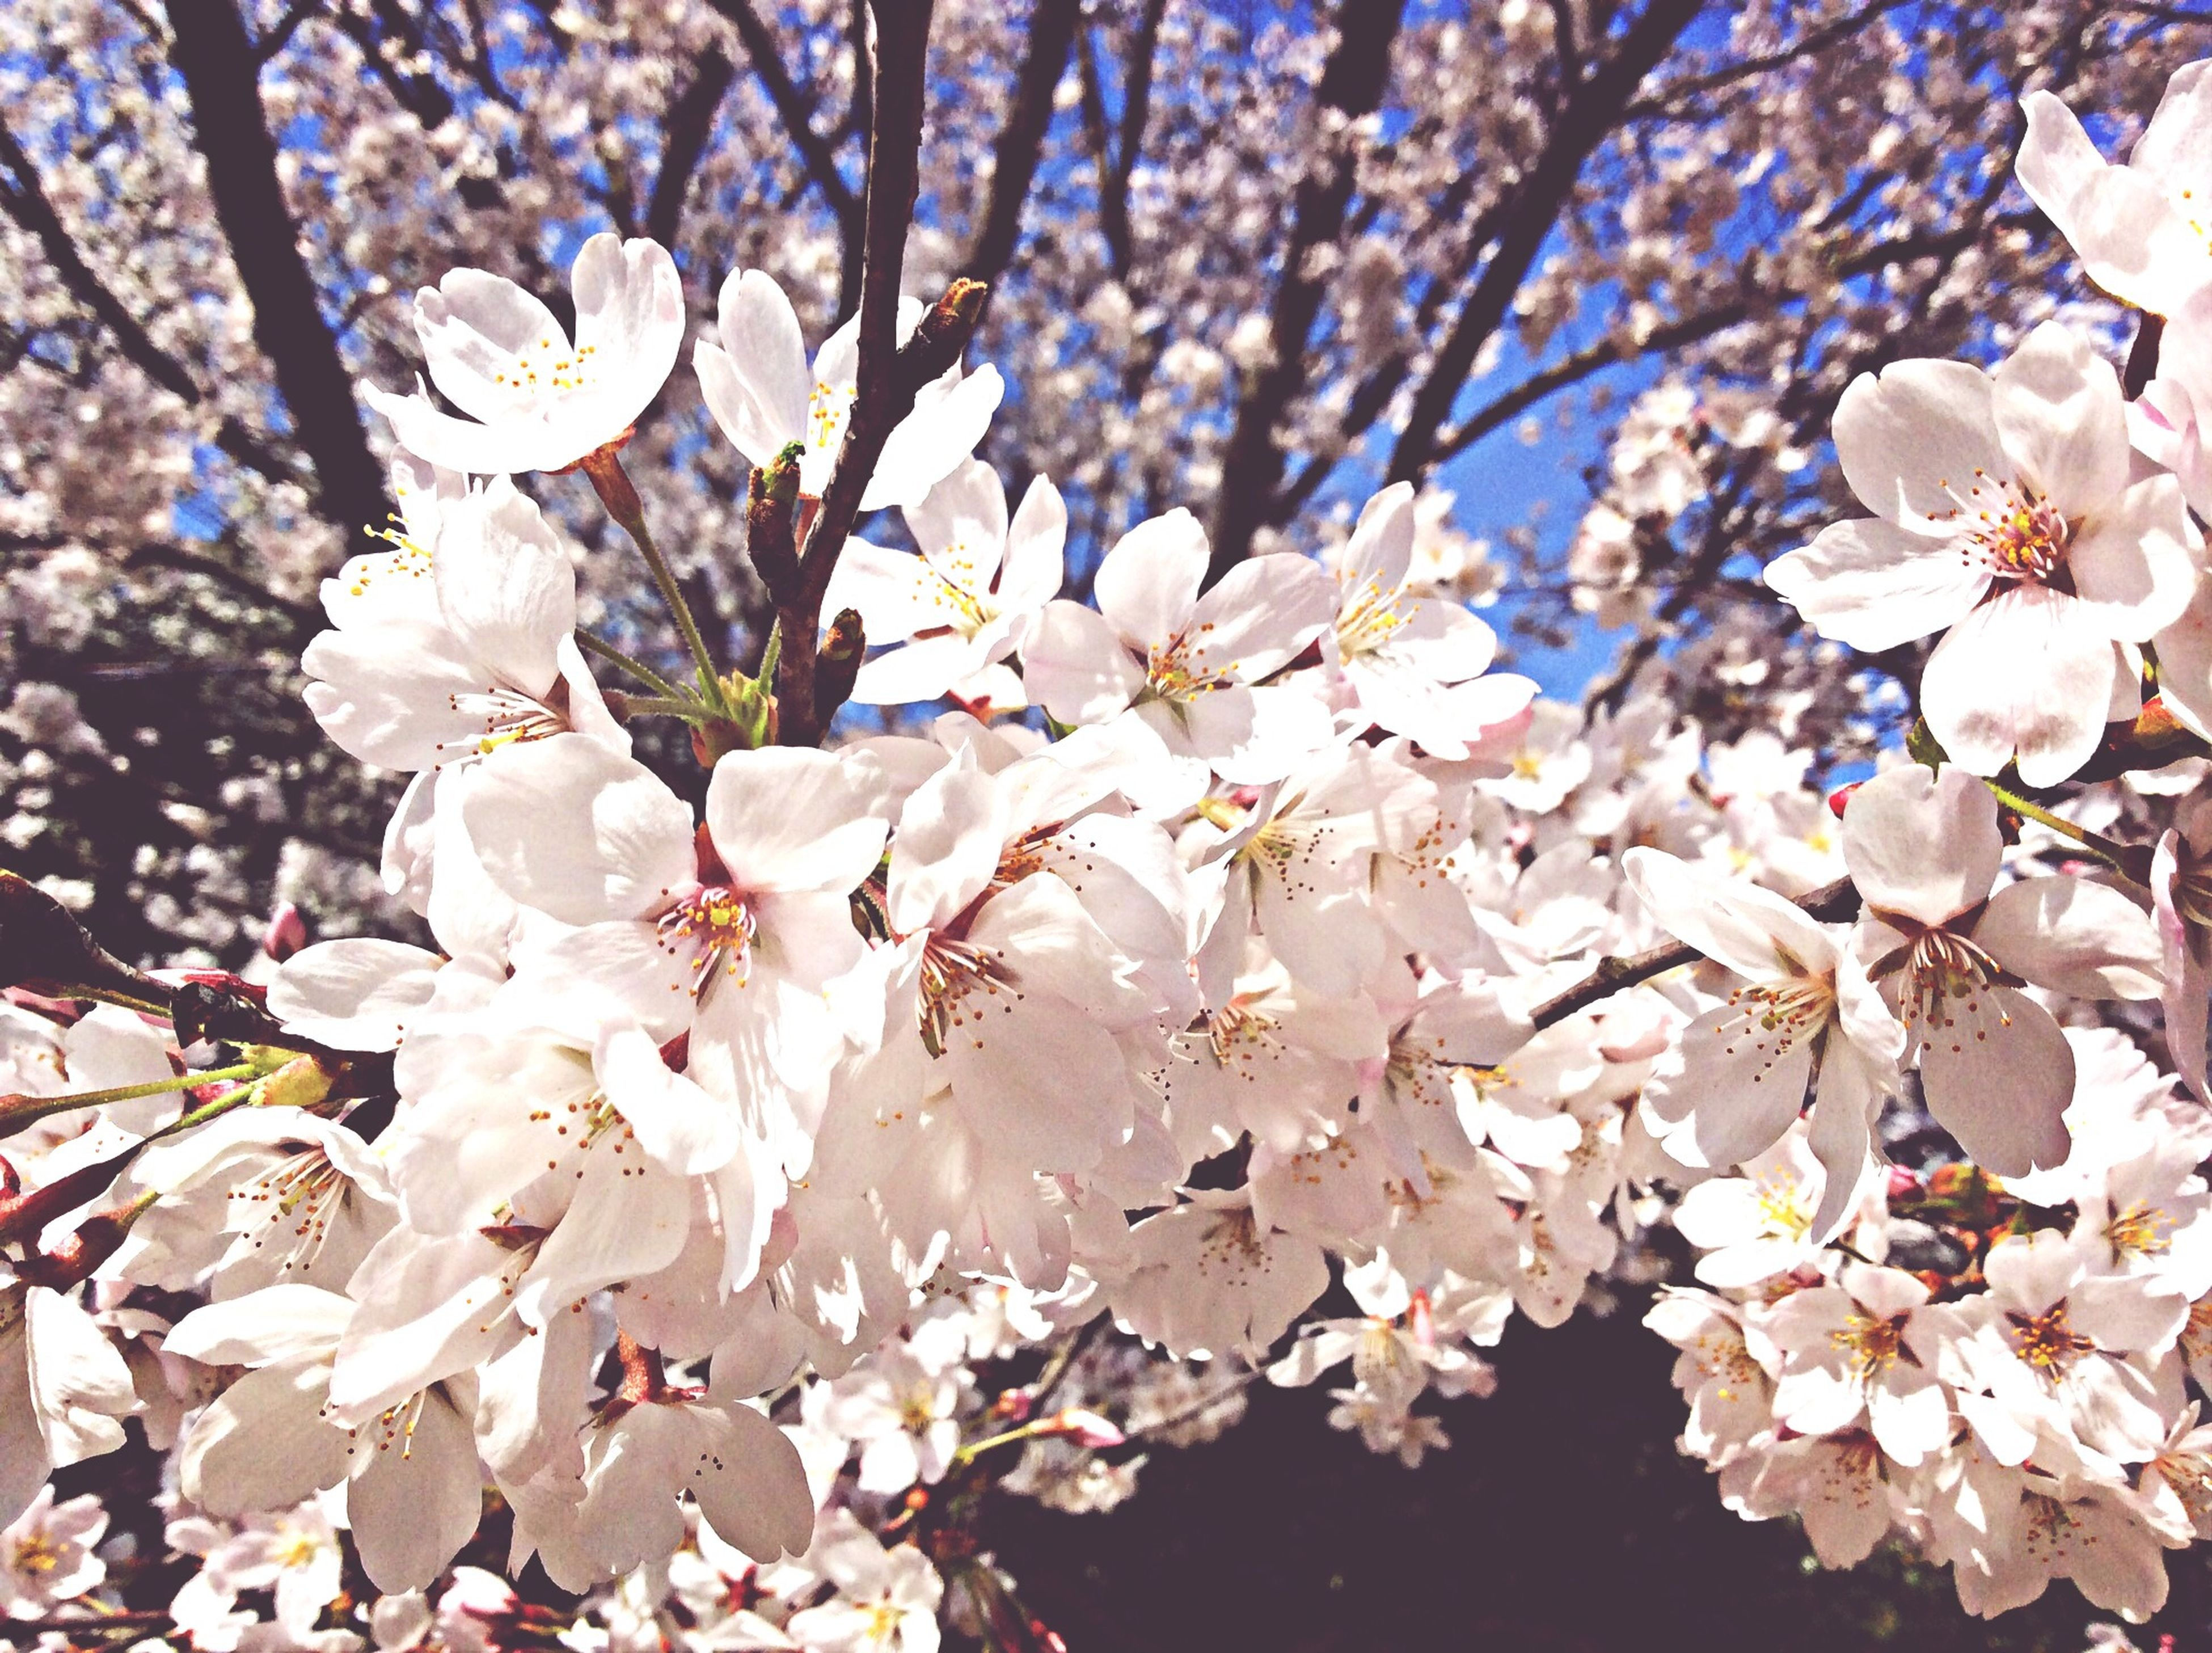 flower, freshness, growth, fragility, branch, beauty in nature, blossom, nature, petal, cherry blossom, tree, white color, in bloom, blooming, cherry tree, springtime, close-up, flower head, botany, day